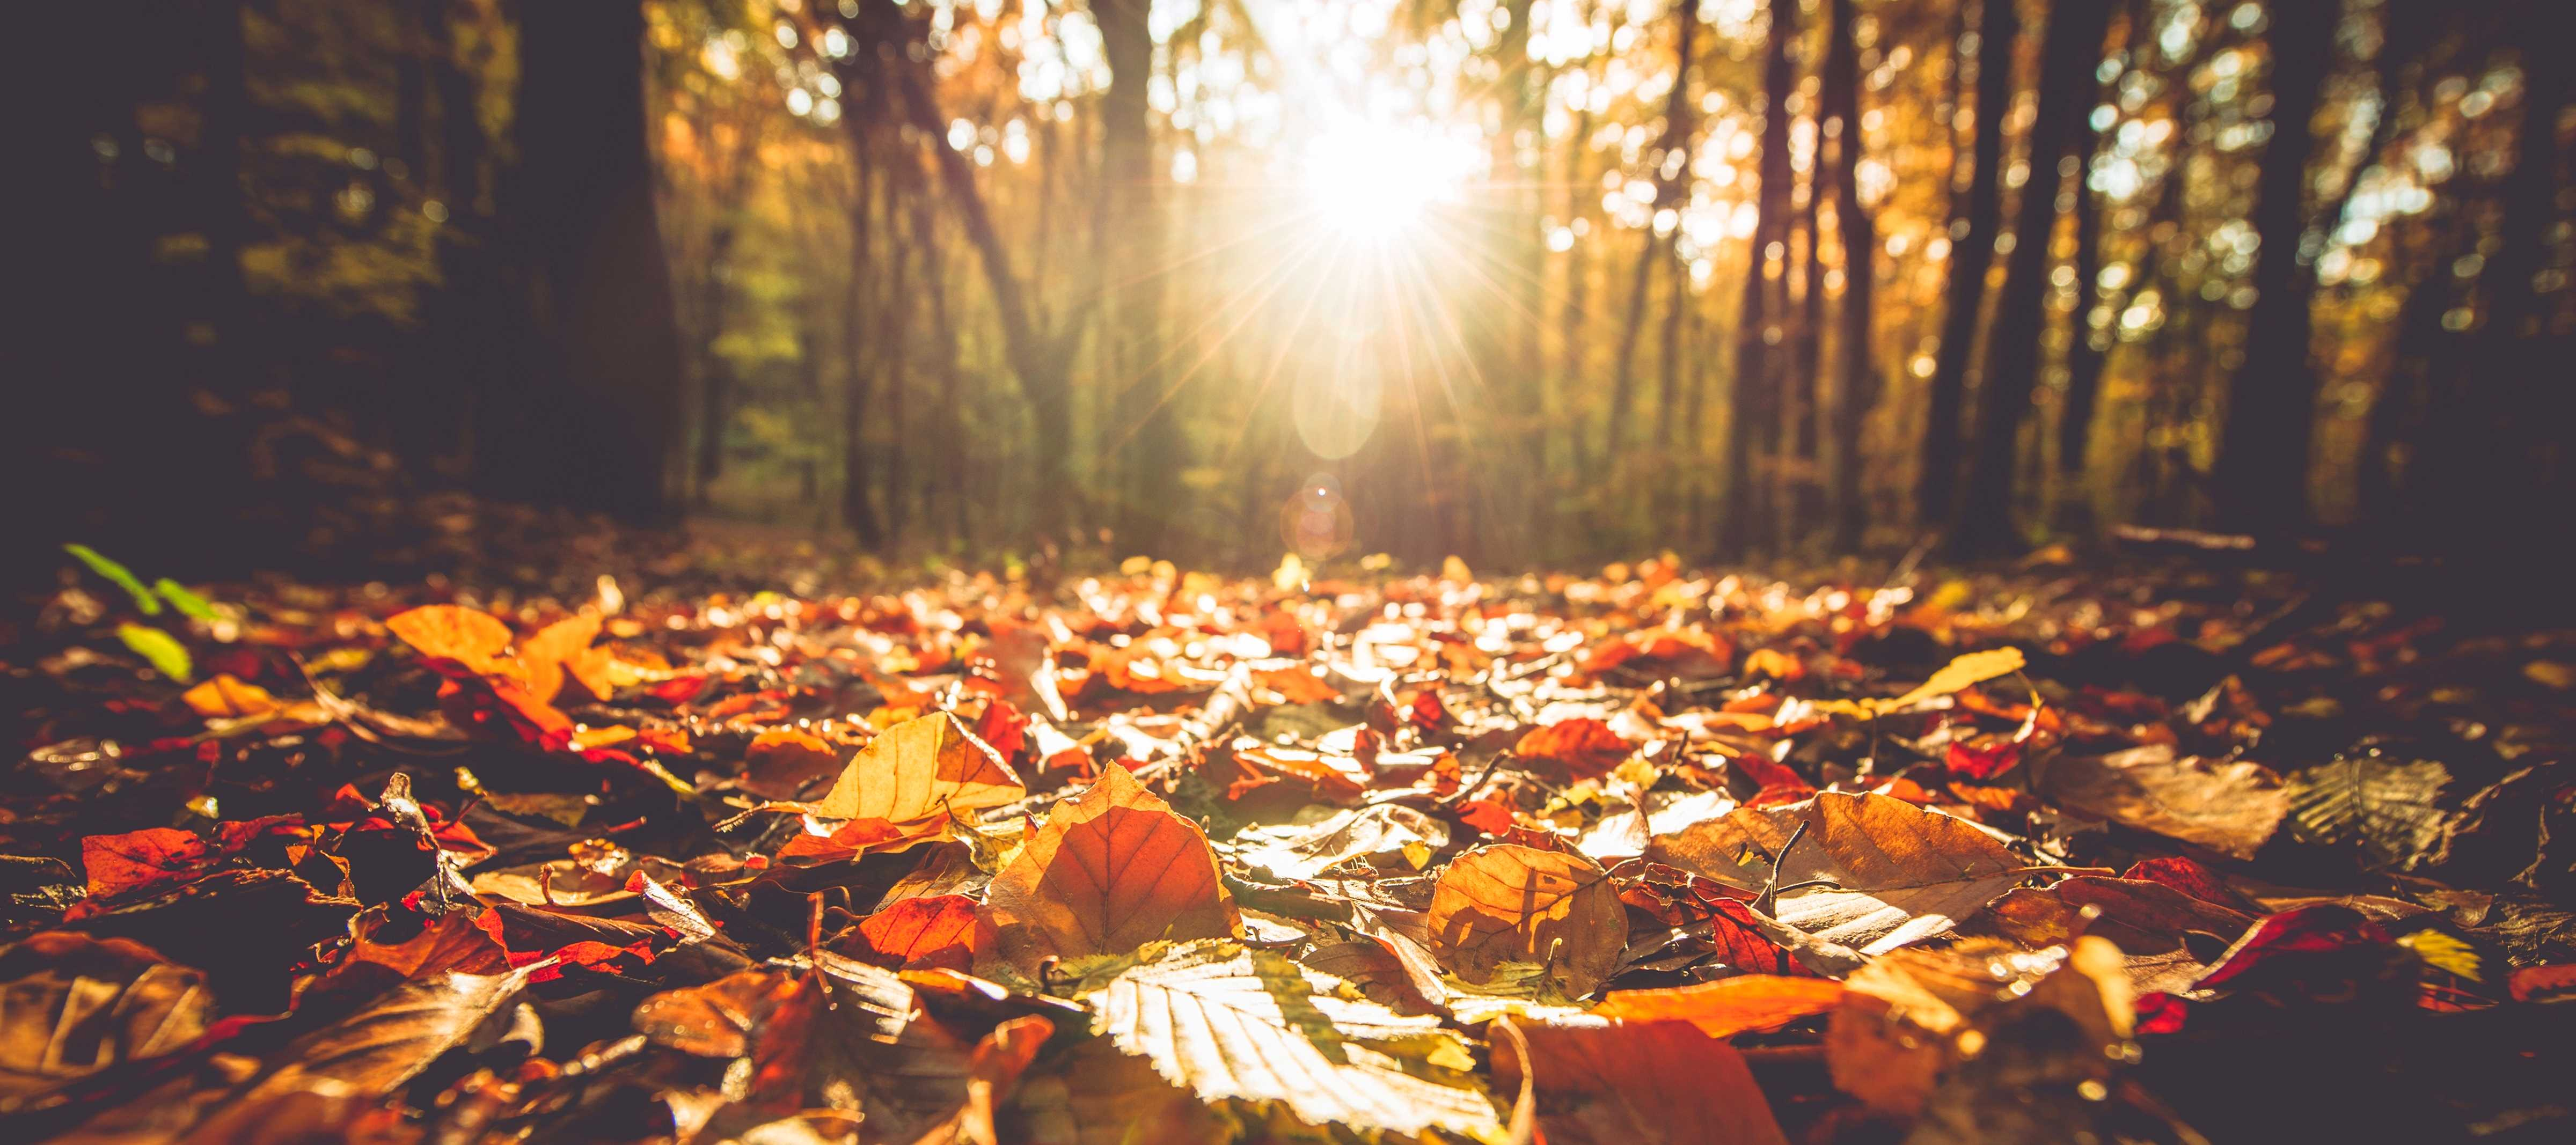 Experience Fall in the Ozarks - Lakefront Realty Hollister Missouri